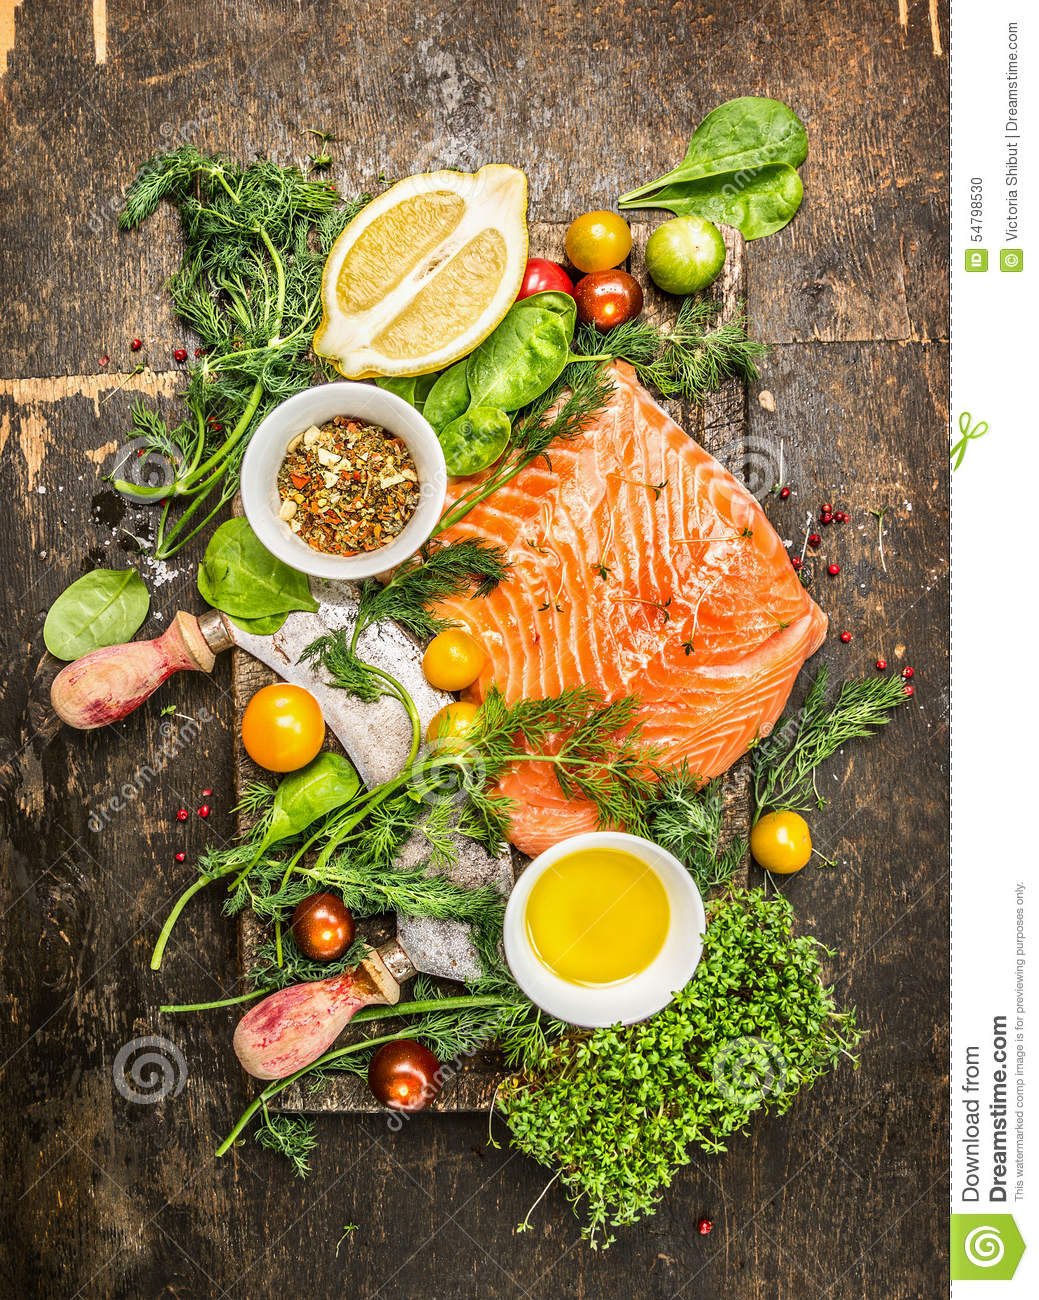 Fresh salmon fillet with fresh healthy herbs,vegetables, oil and spices on rustic wooden background